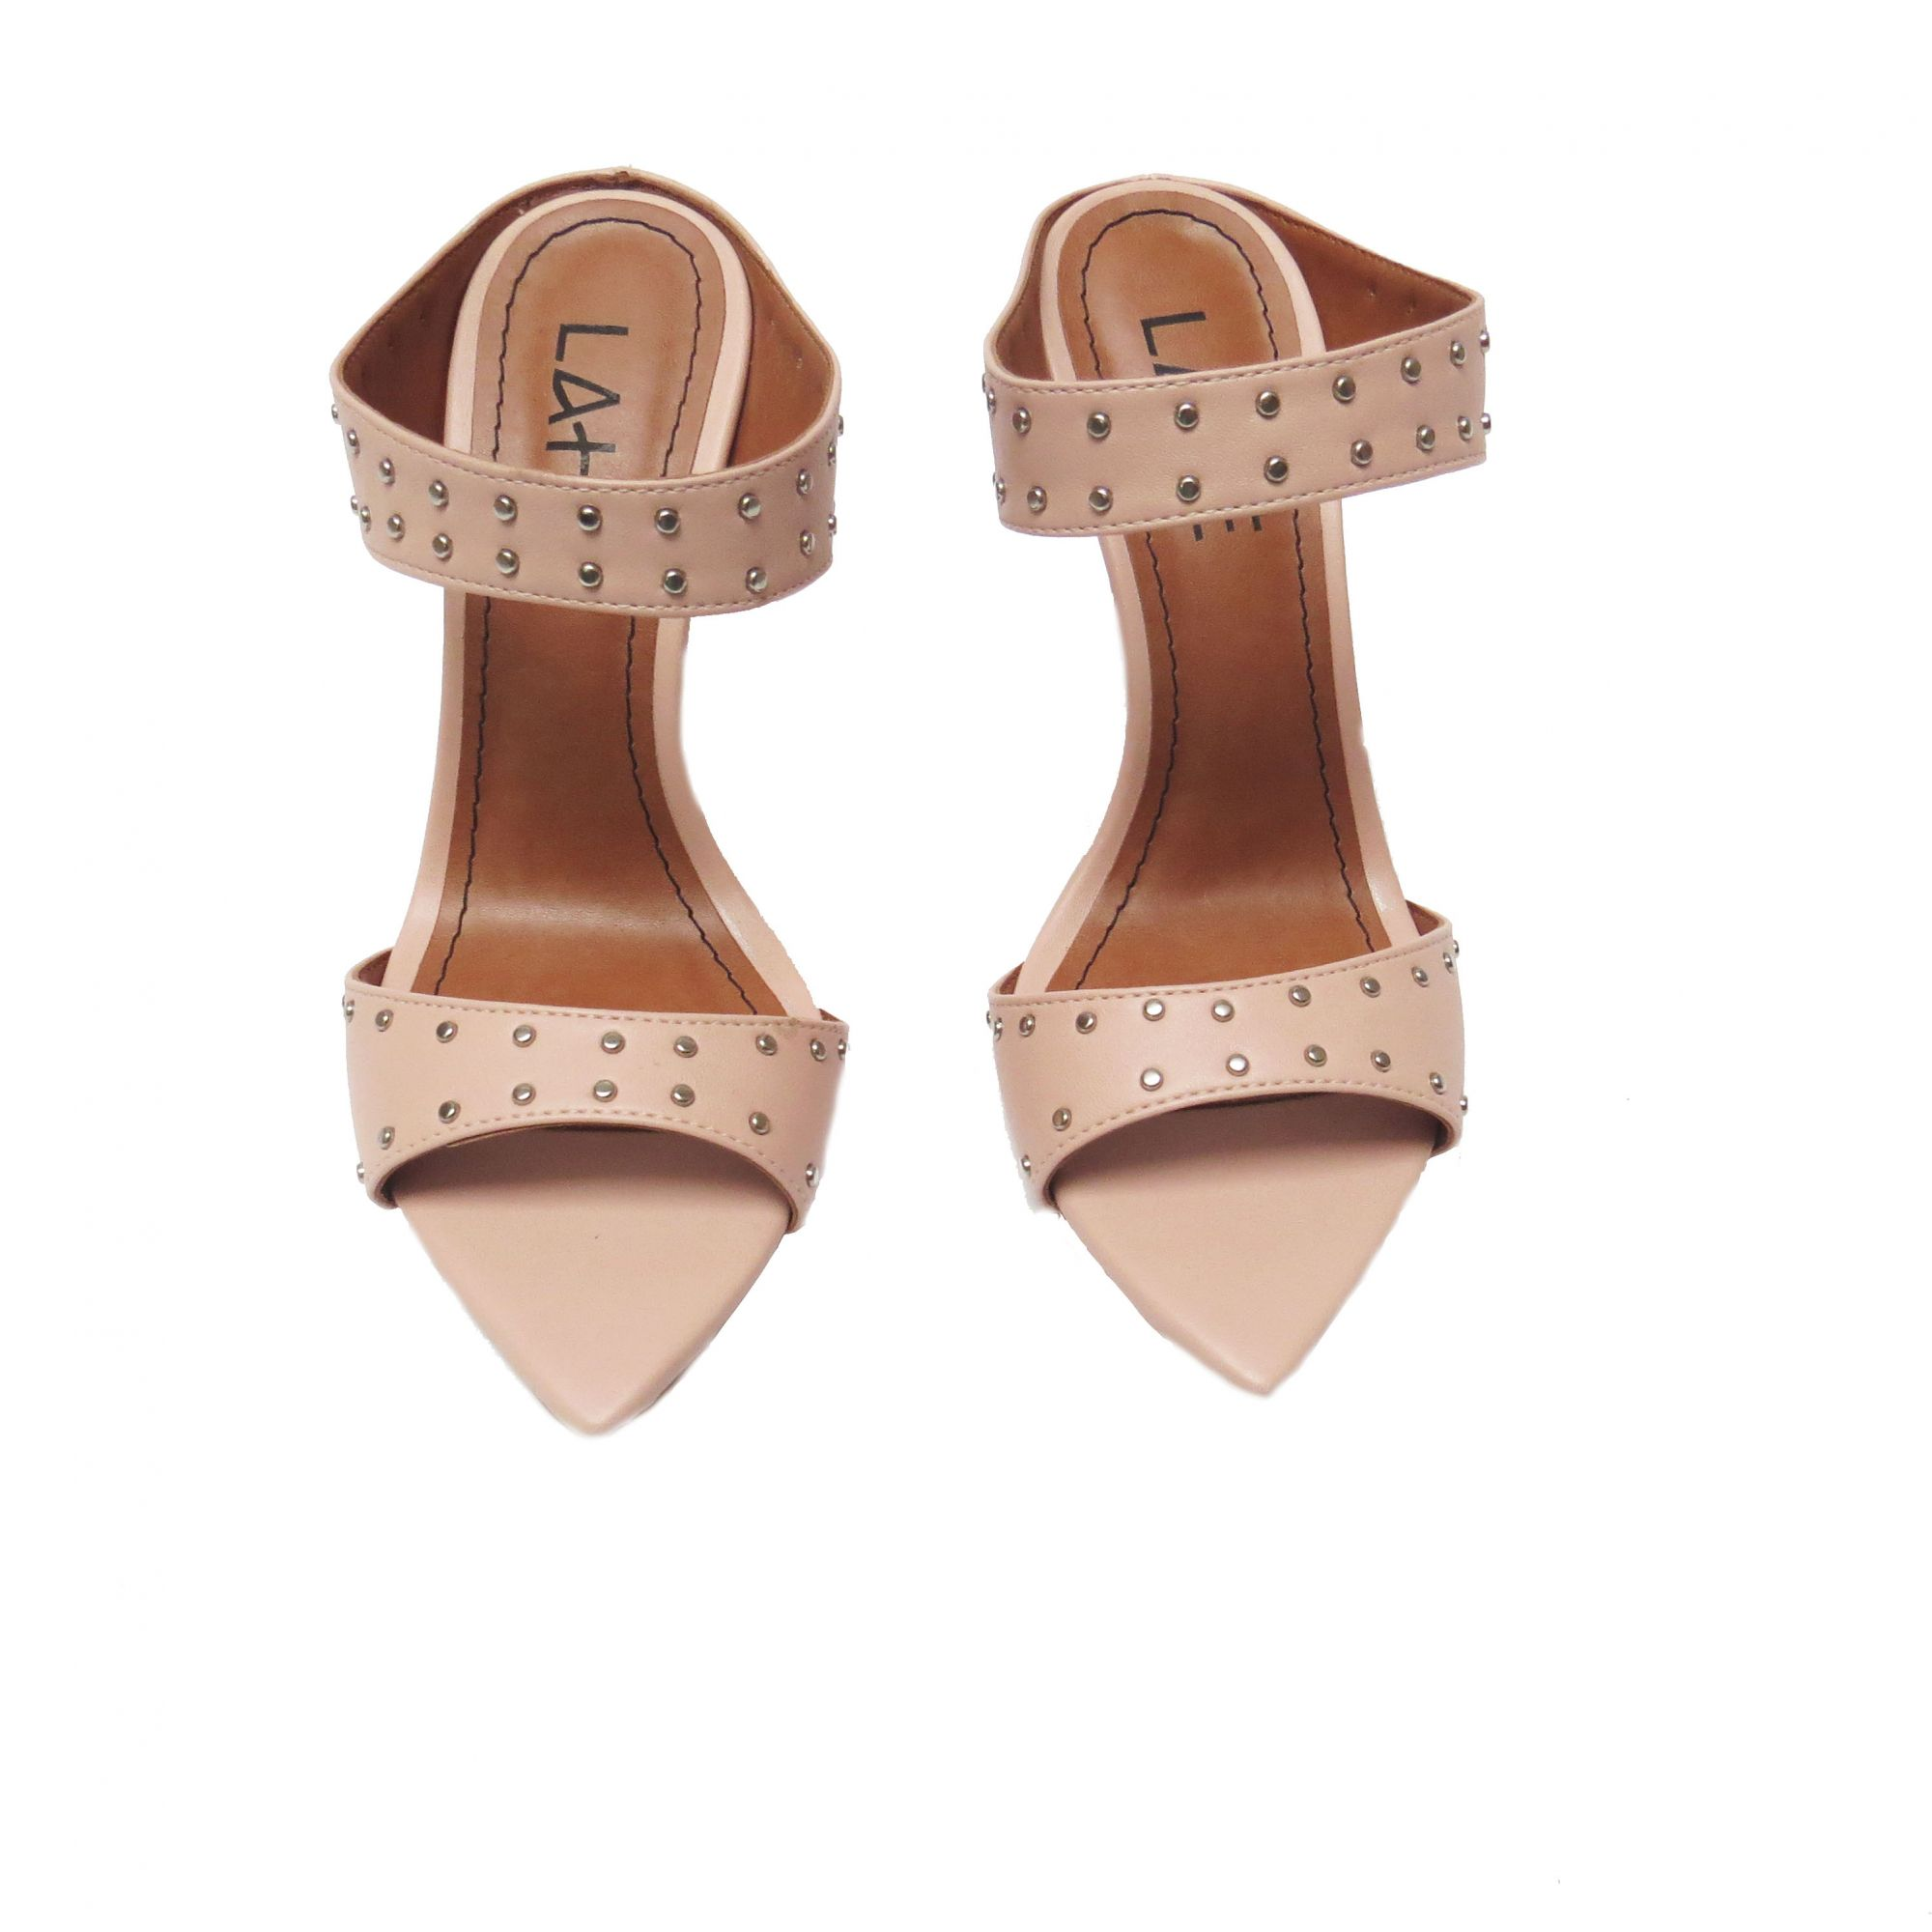 Tamanco Juliana  com spikes - Quartzo